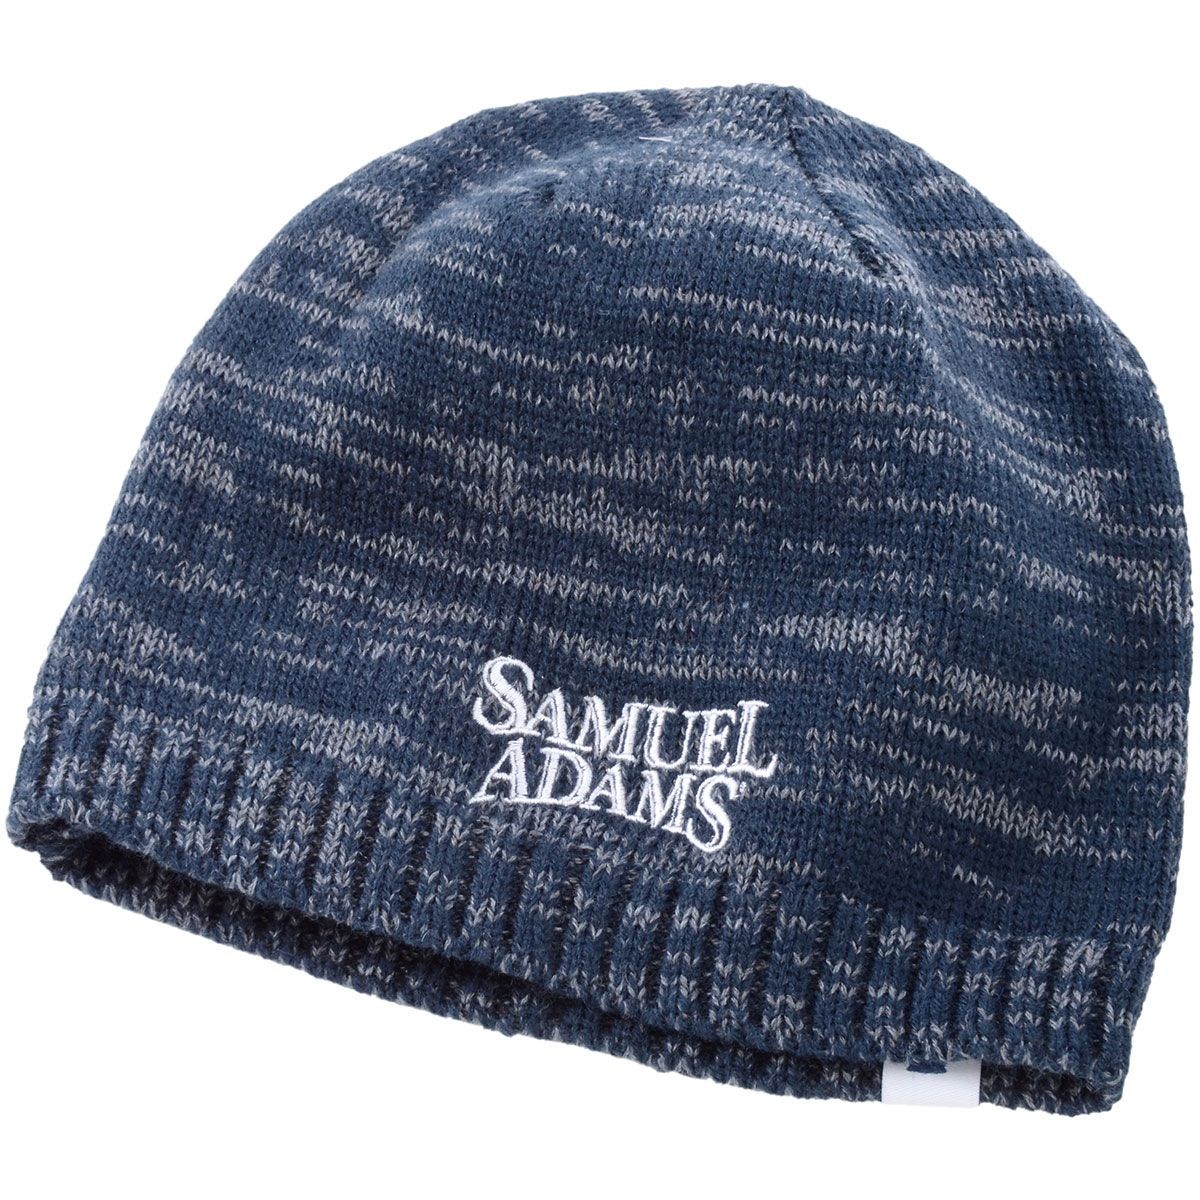 0ca879729 Samuel Adams Navy Beanie | Craft Beer Collectibles | Beanie, Samuel ...